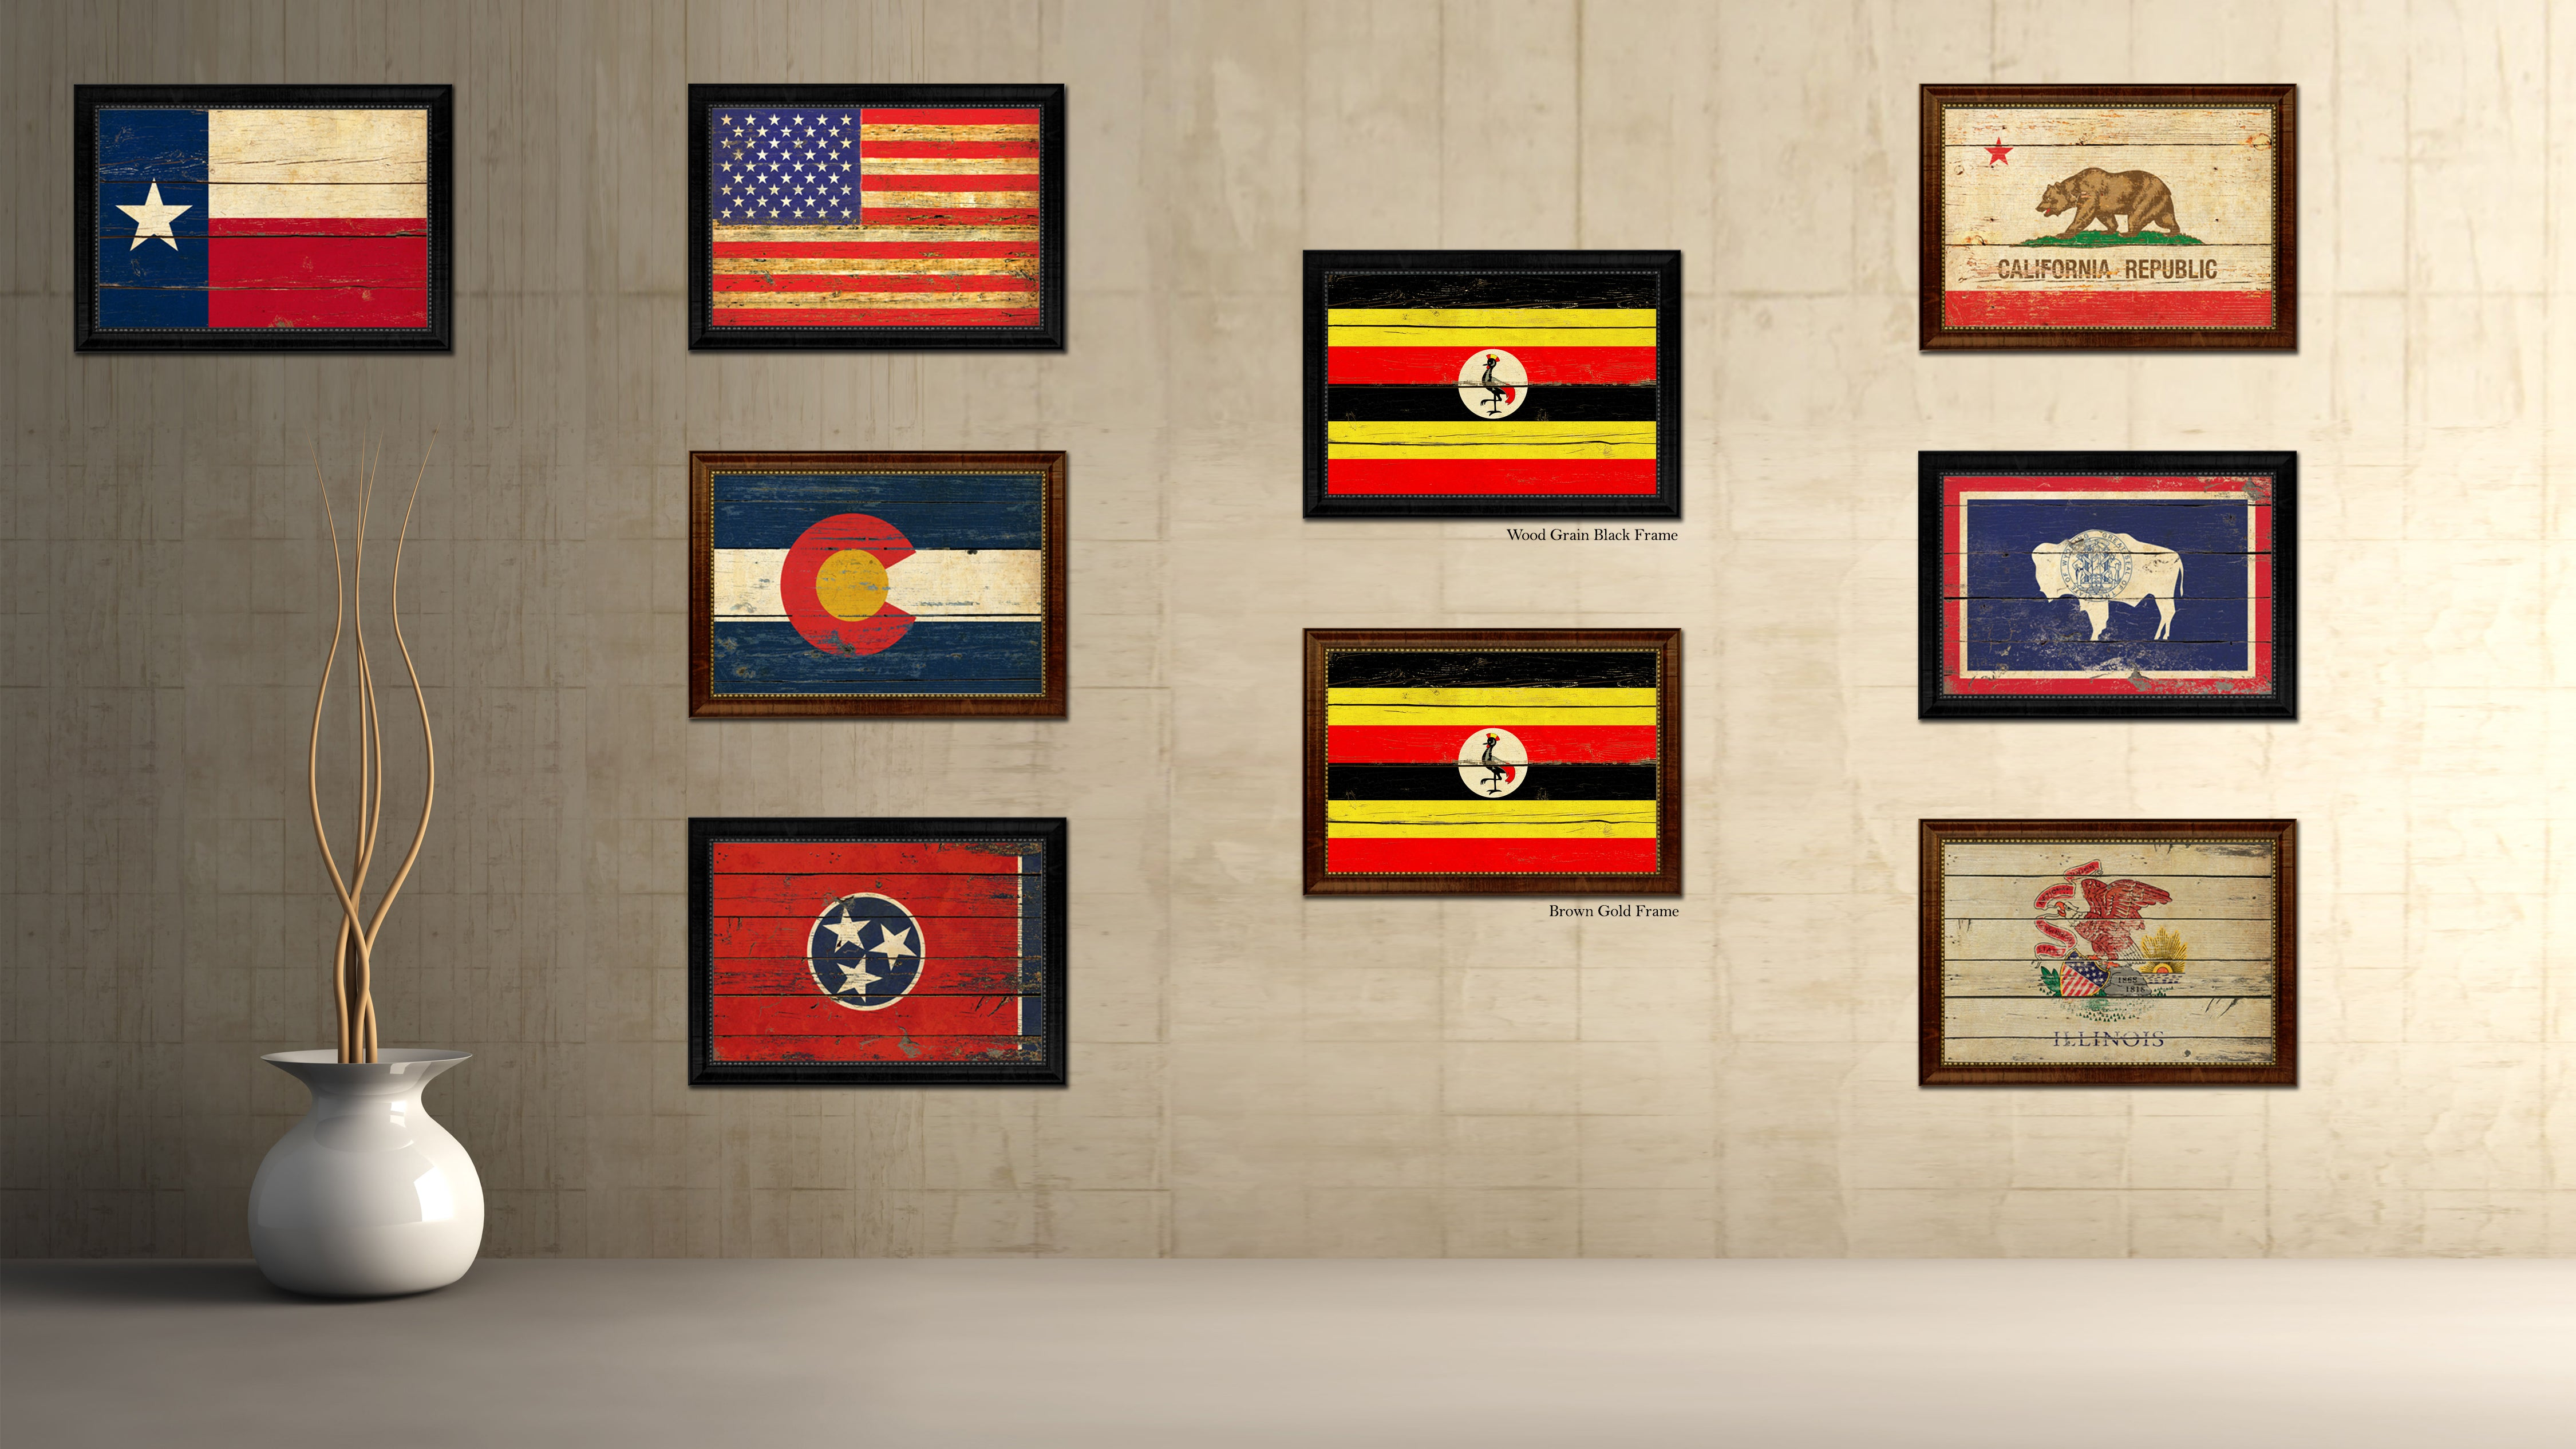 Uganda Country Flag Vintage Canvas Print with Black Picture Frame Home Decor Gifts Wall Art Decoration Artwork